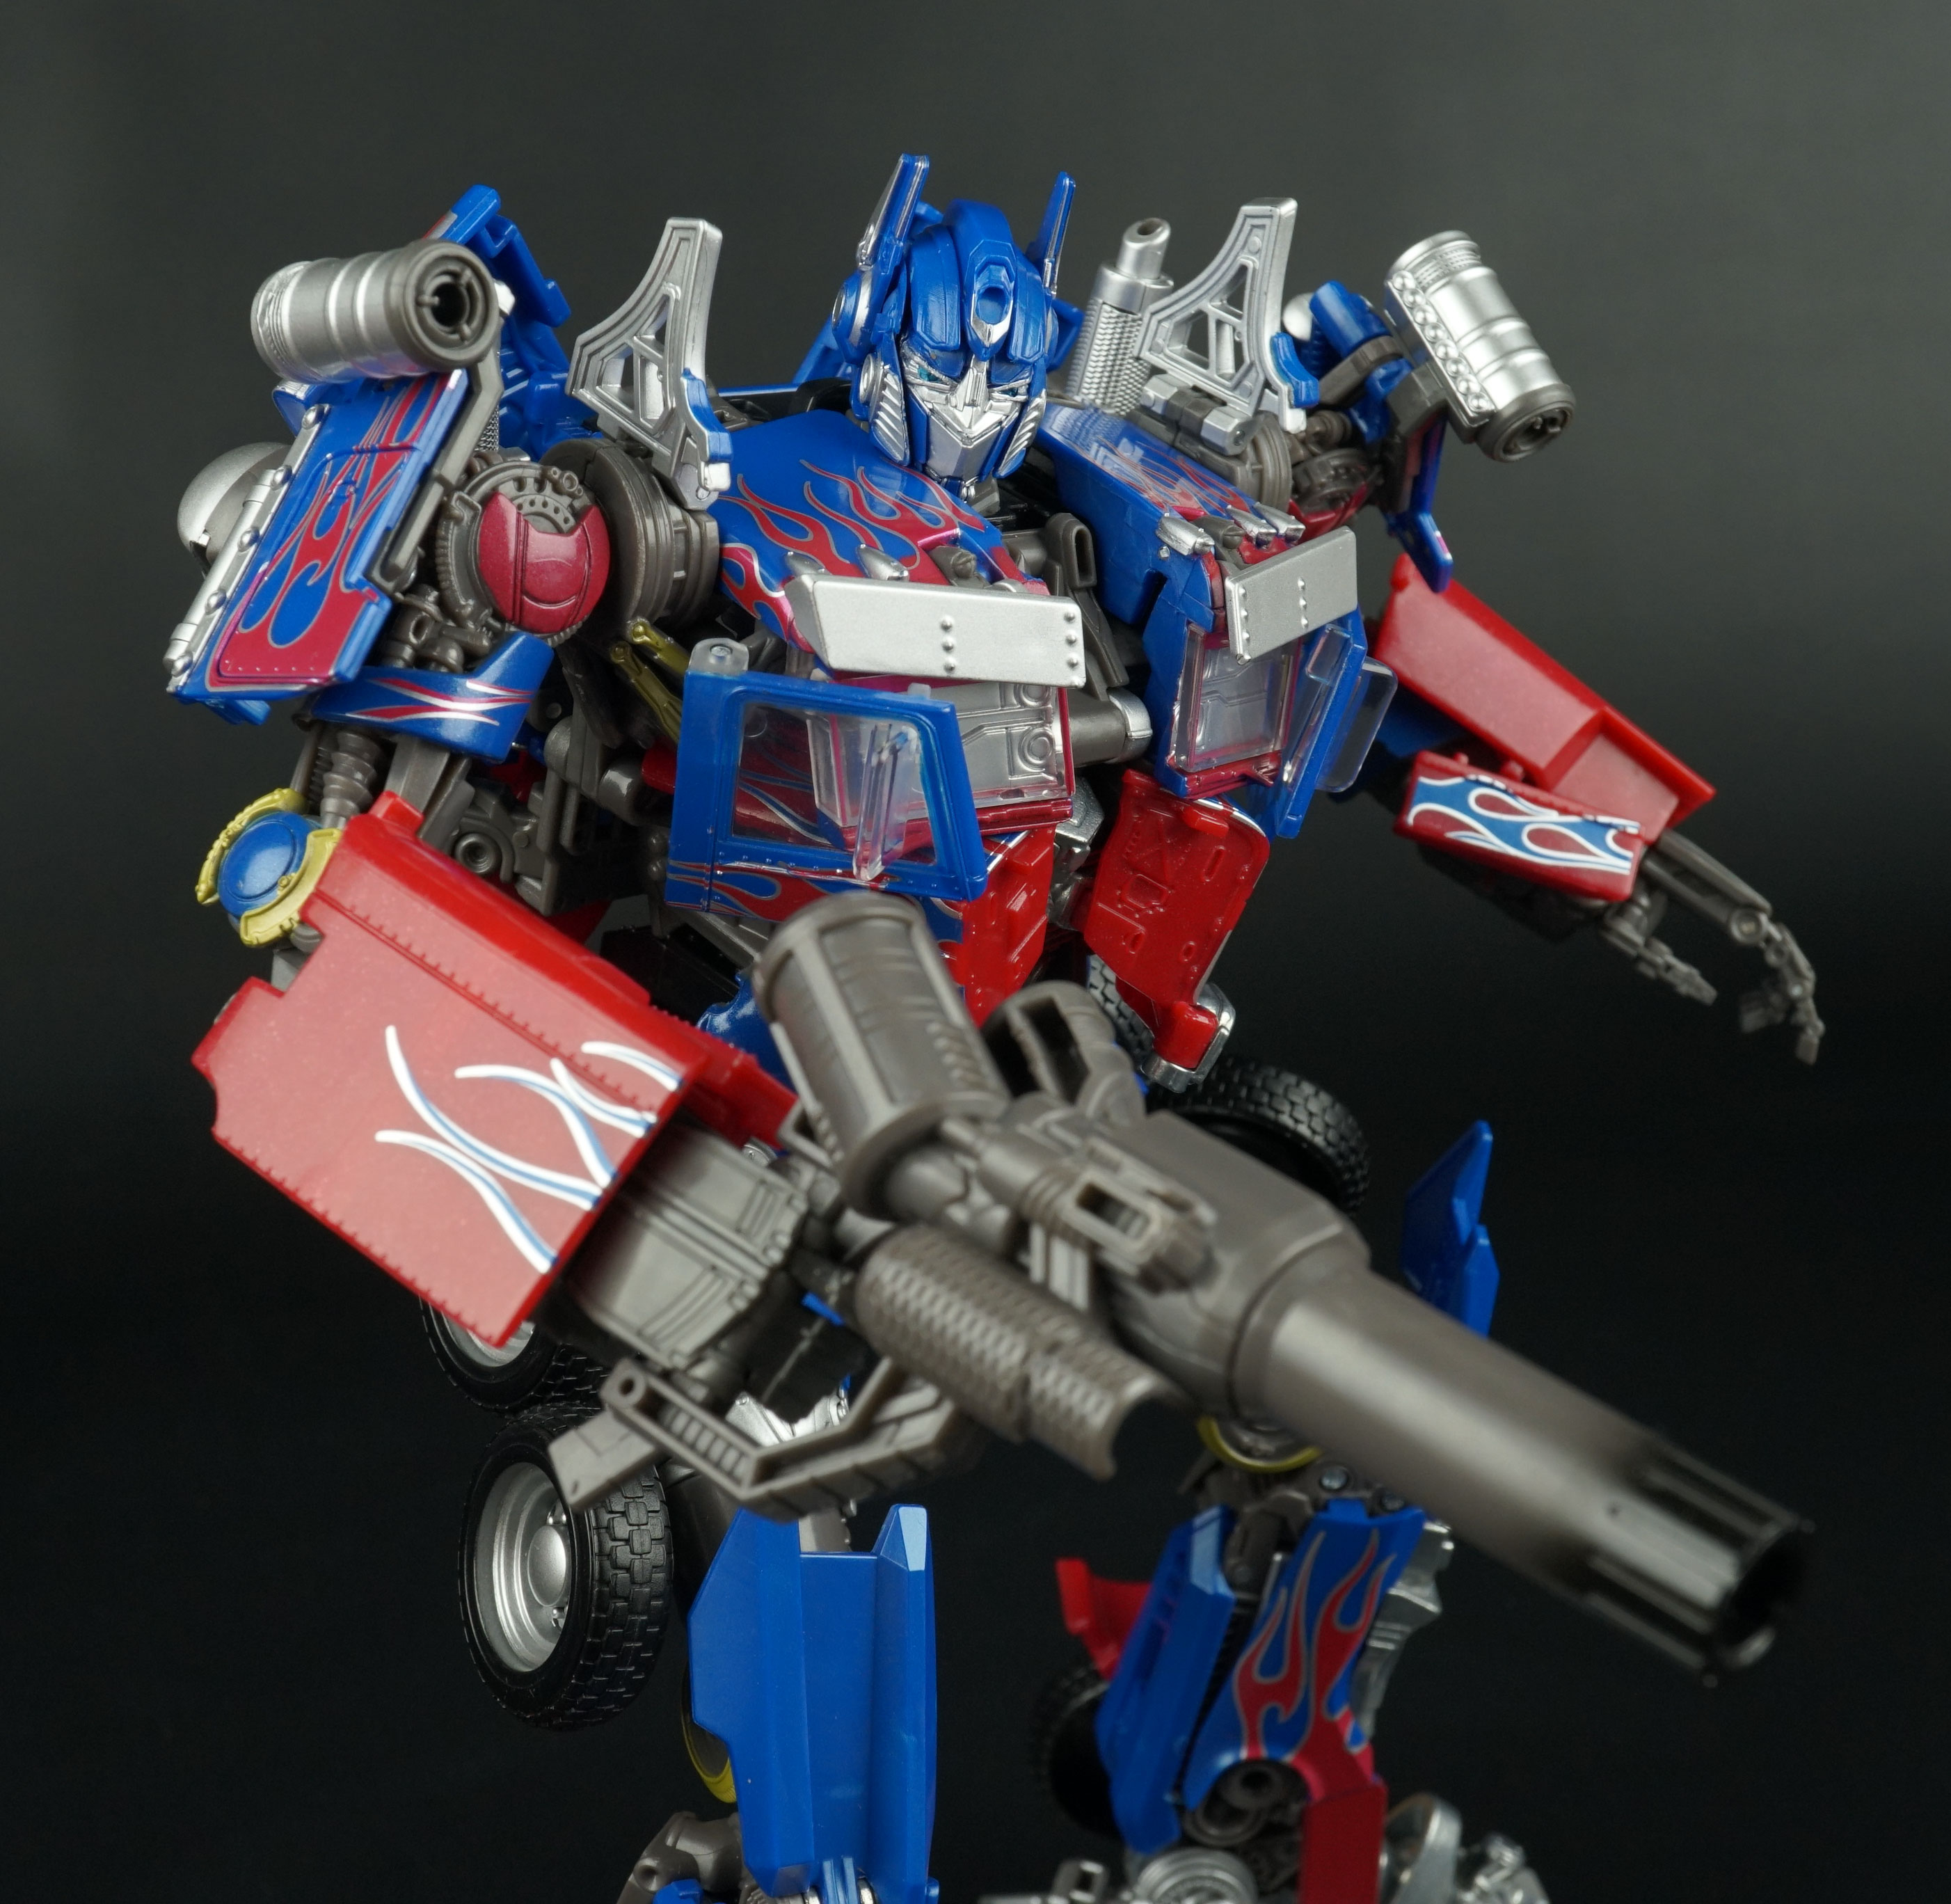 TAKARA TOMY TRANSFORMERS MPM-4 OPTIMUS PRIME MASTER PIECE MOVIE SERIES